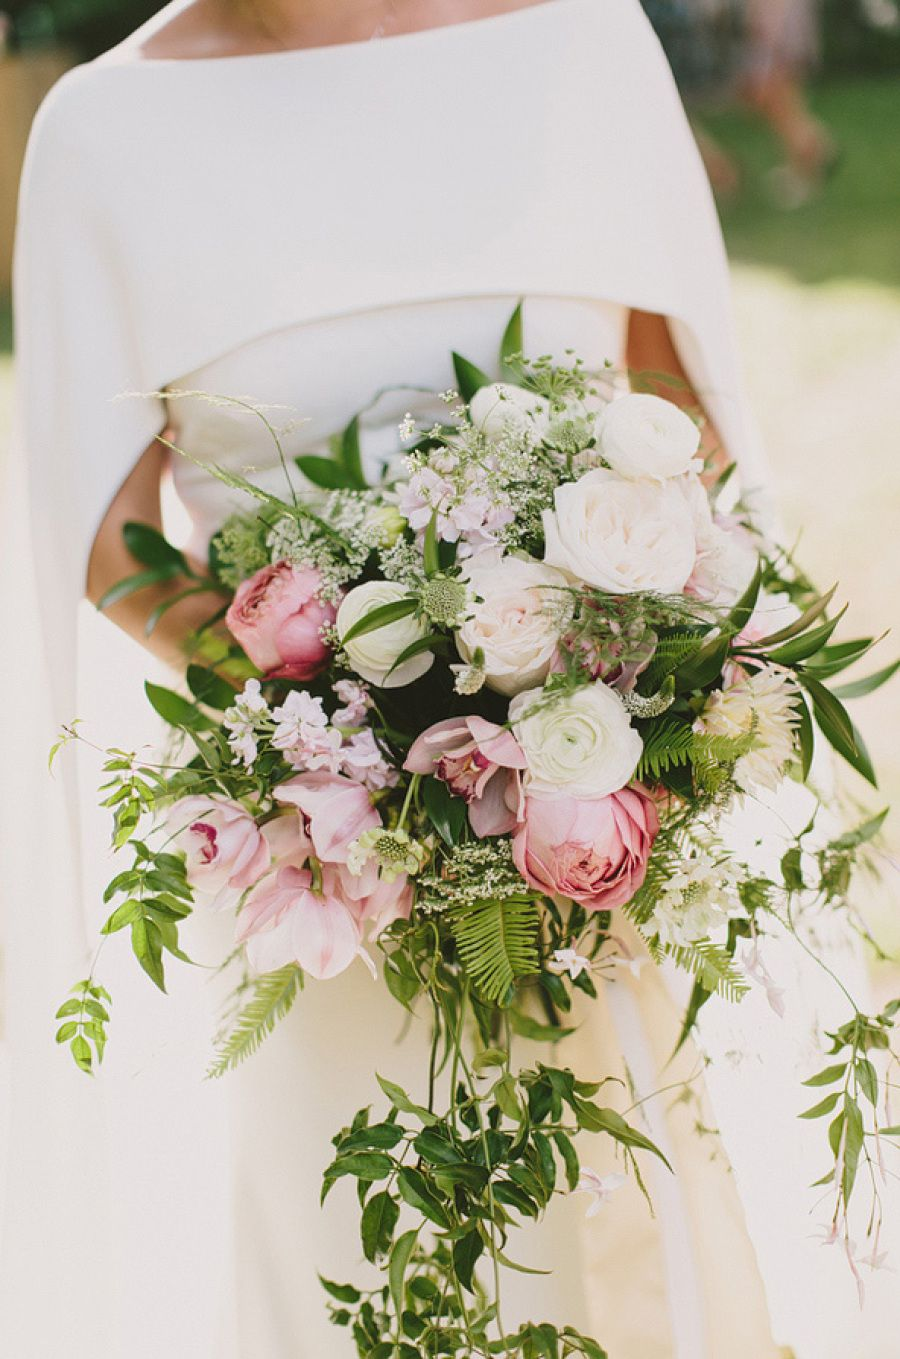 Private Estate Wedding Bouquet By Minka Flowers In Kennebunkport Maine Wedding Flowers Loverly Weddings Floral Wreath